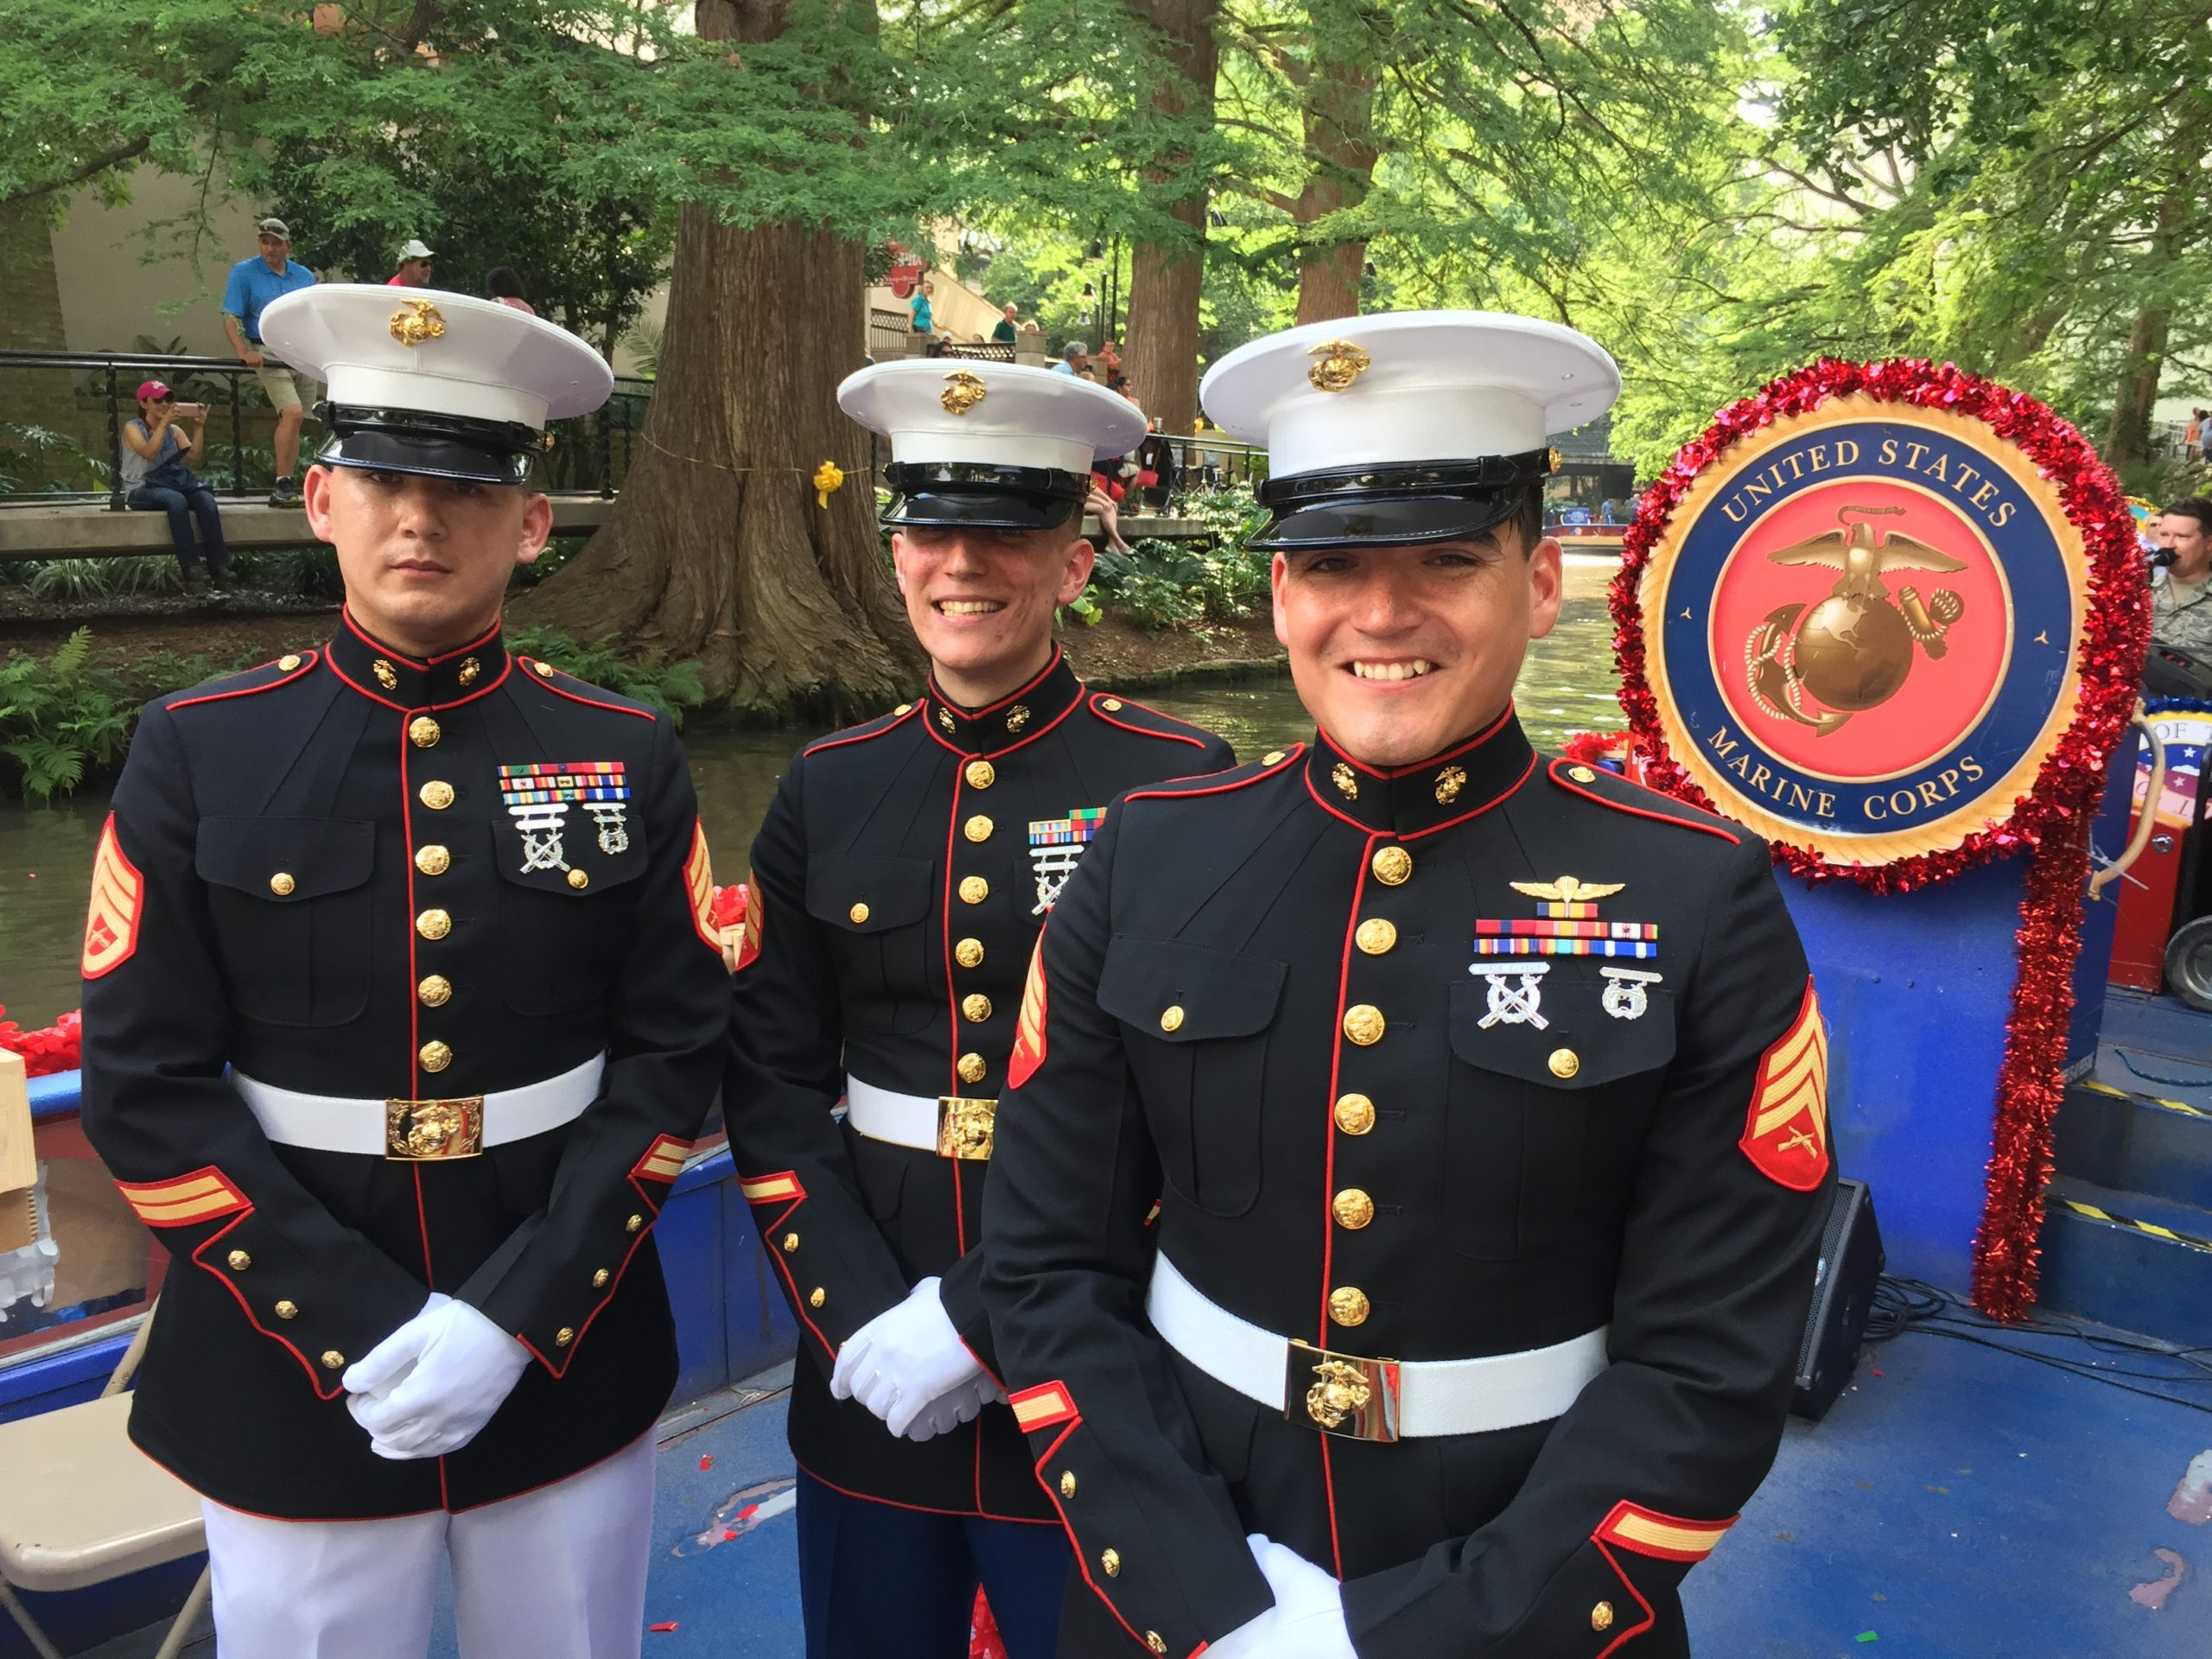 Marines on a river float